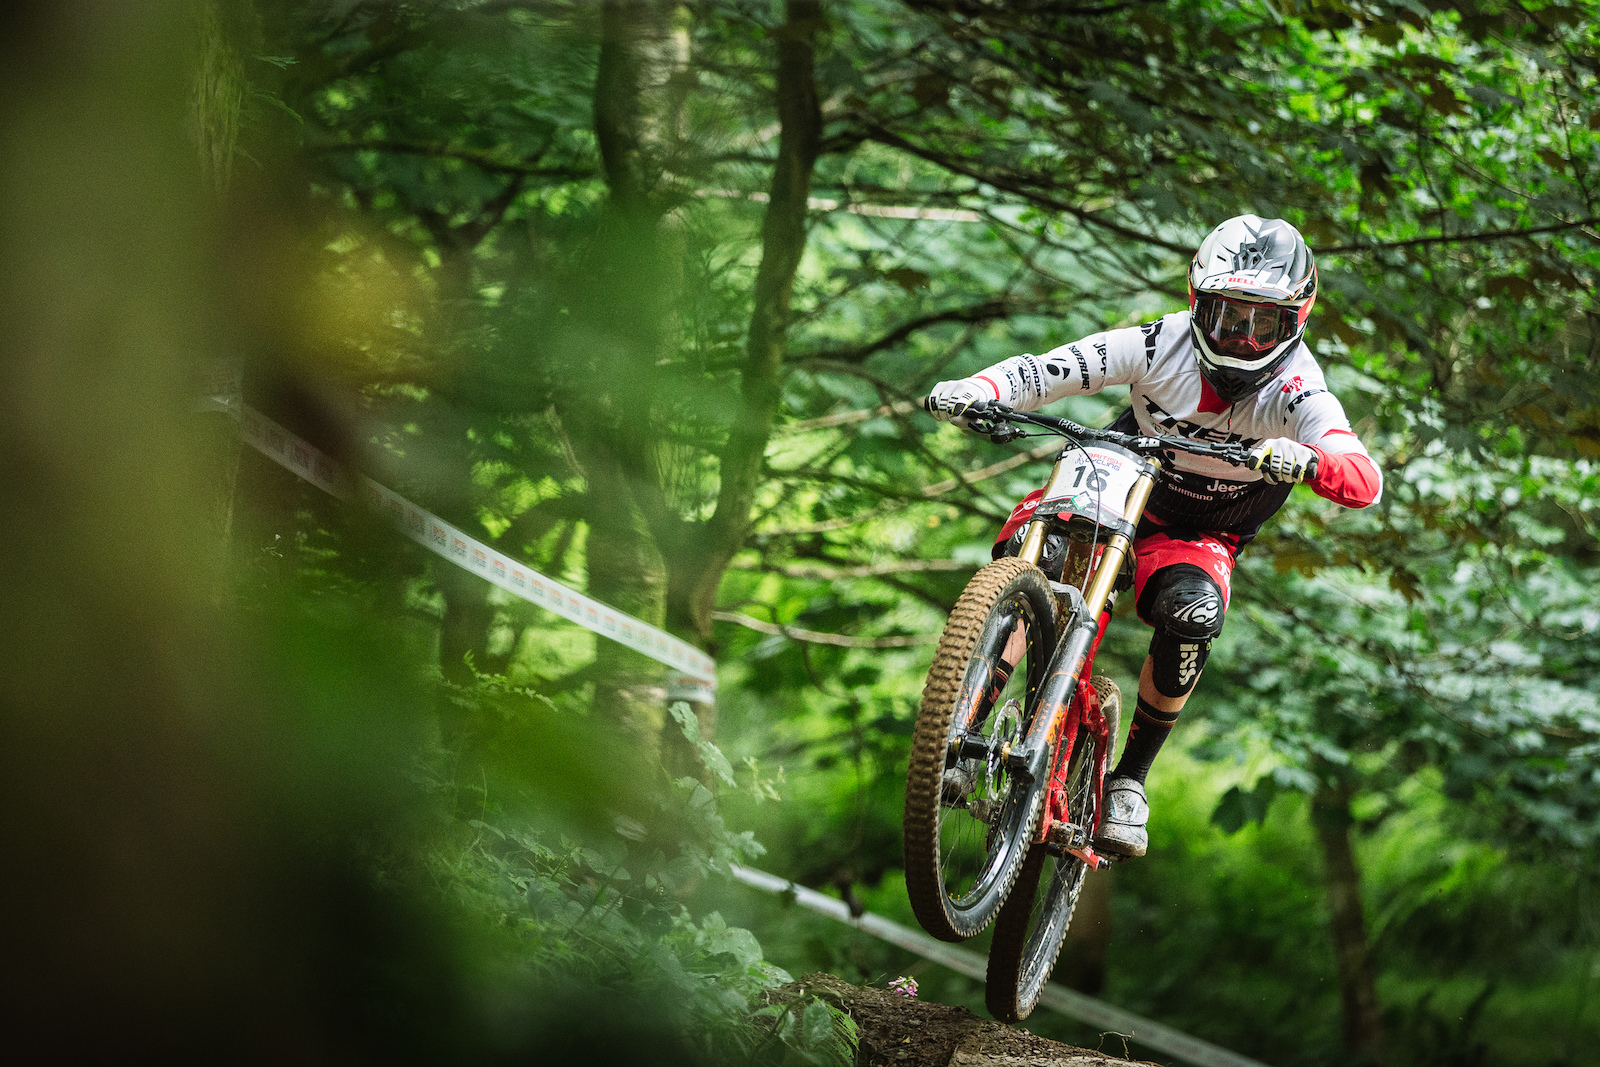 A notable change to the norm Taylor Vernon beat teammate Gee Atherton by one spot. Both were just 3 seconds off the pace but placed 8th and 9th showing just how tight times were at the top of the mens category.